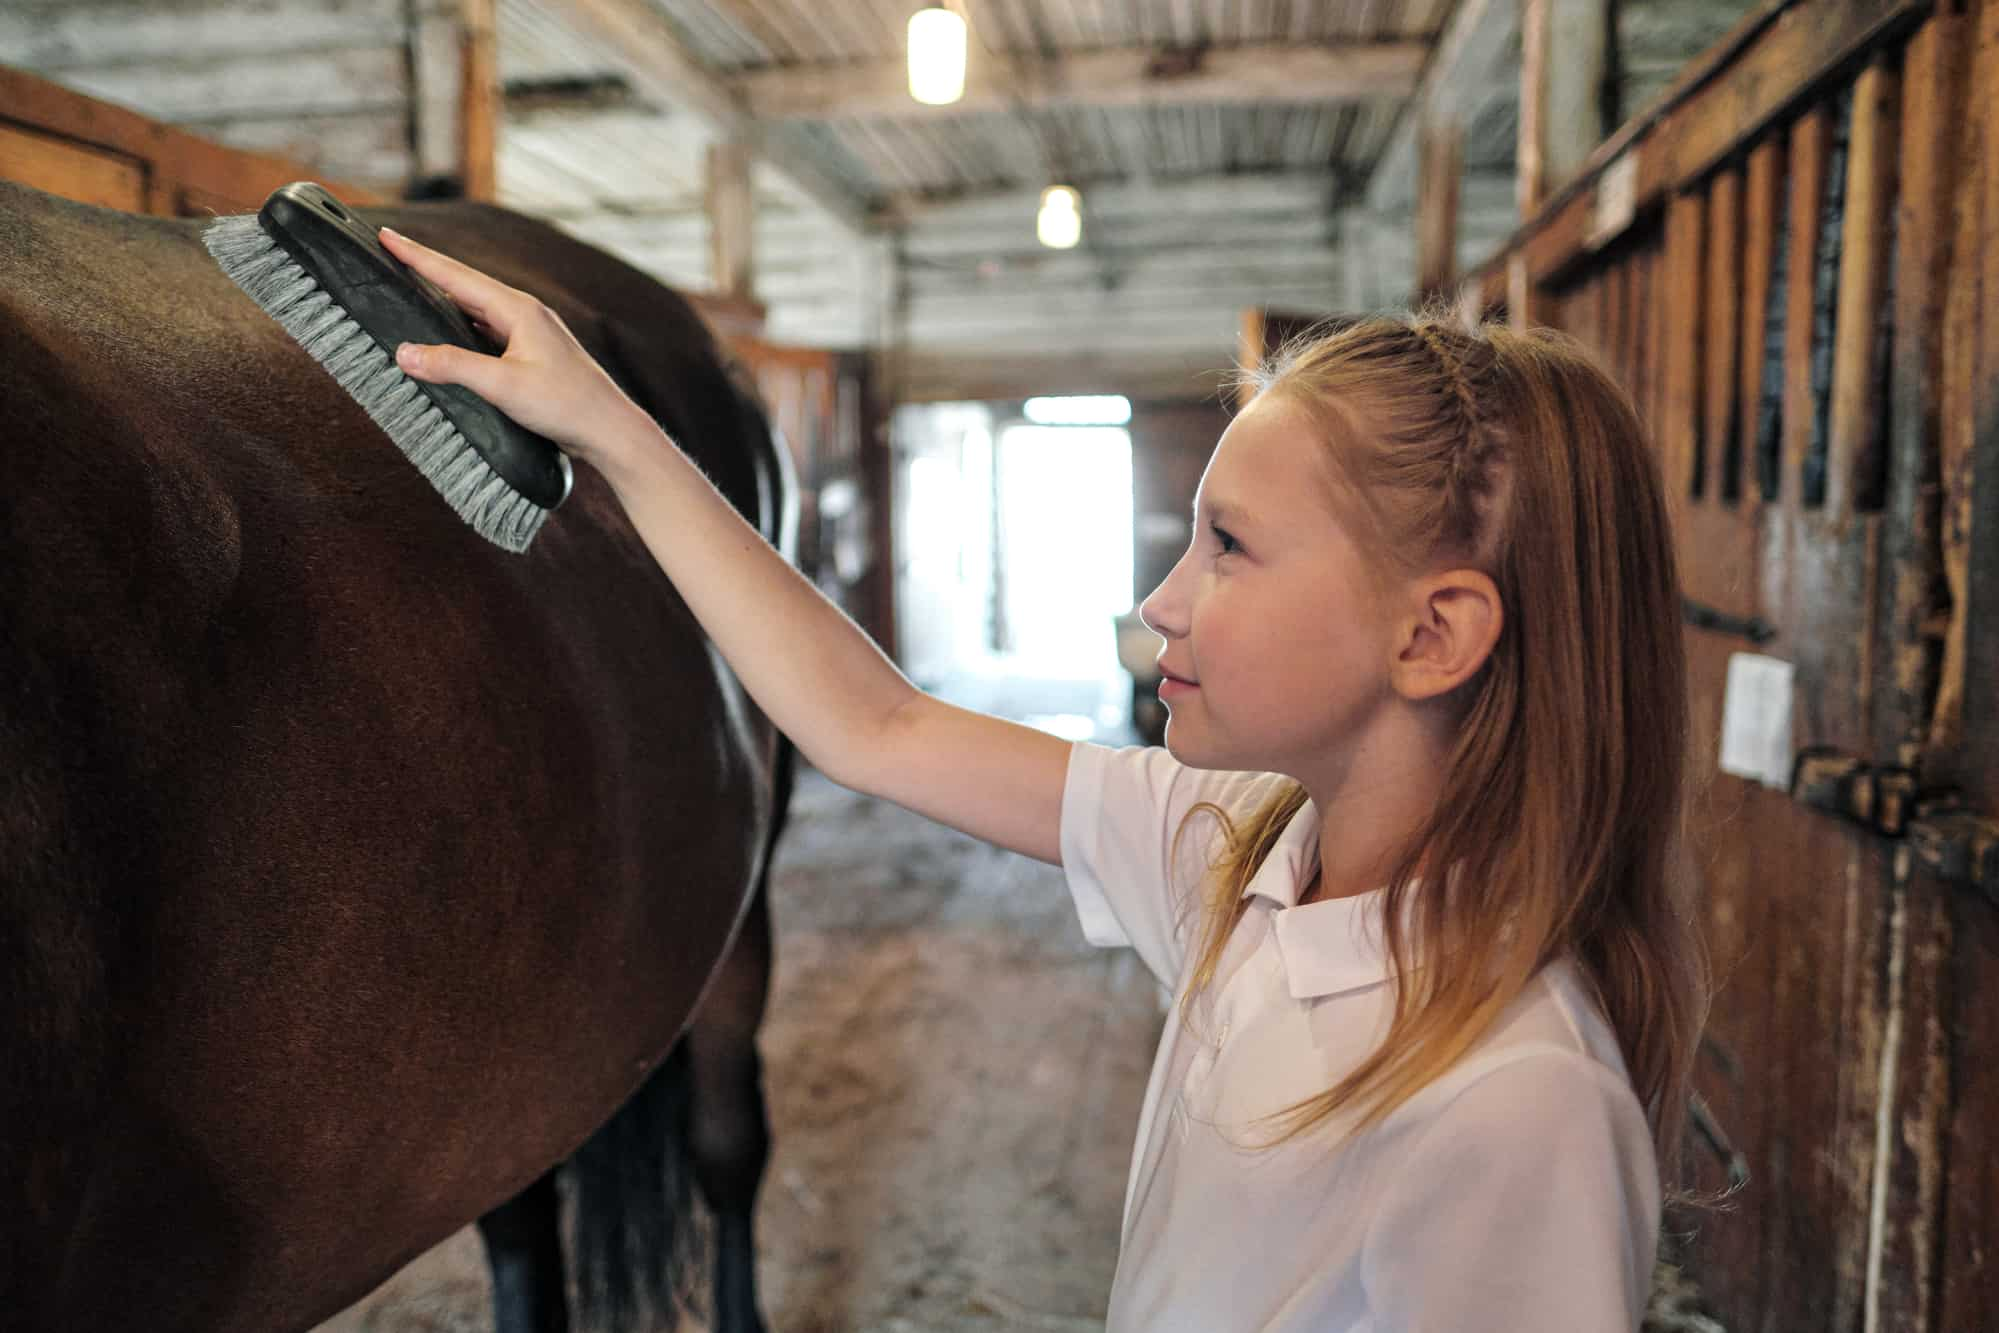 12 Year Old Girl Grooming a Horse